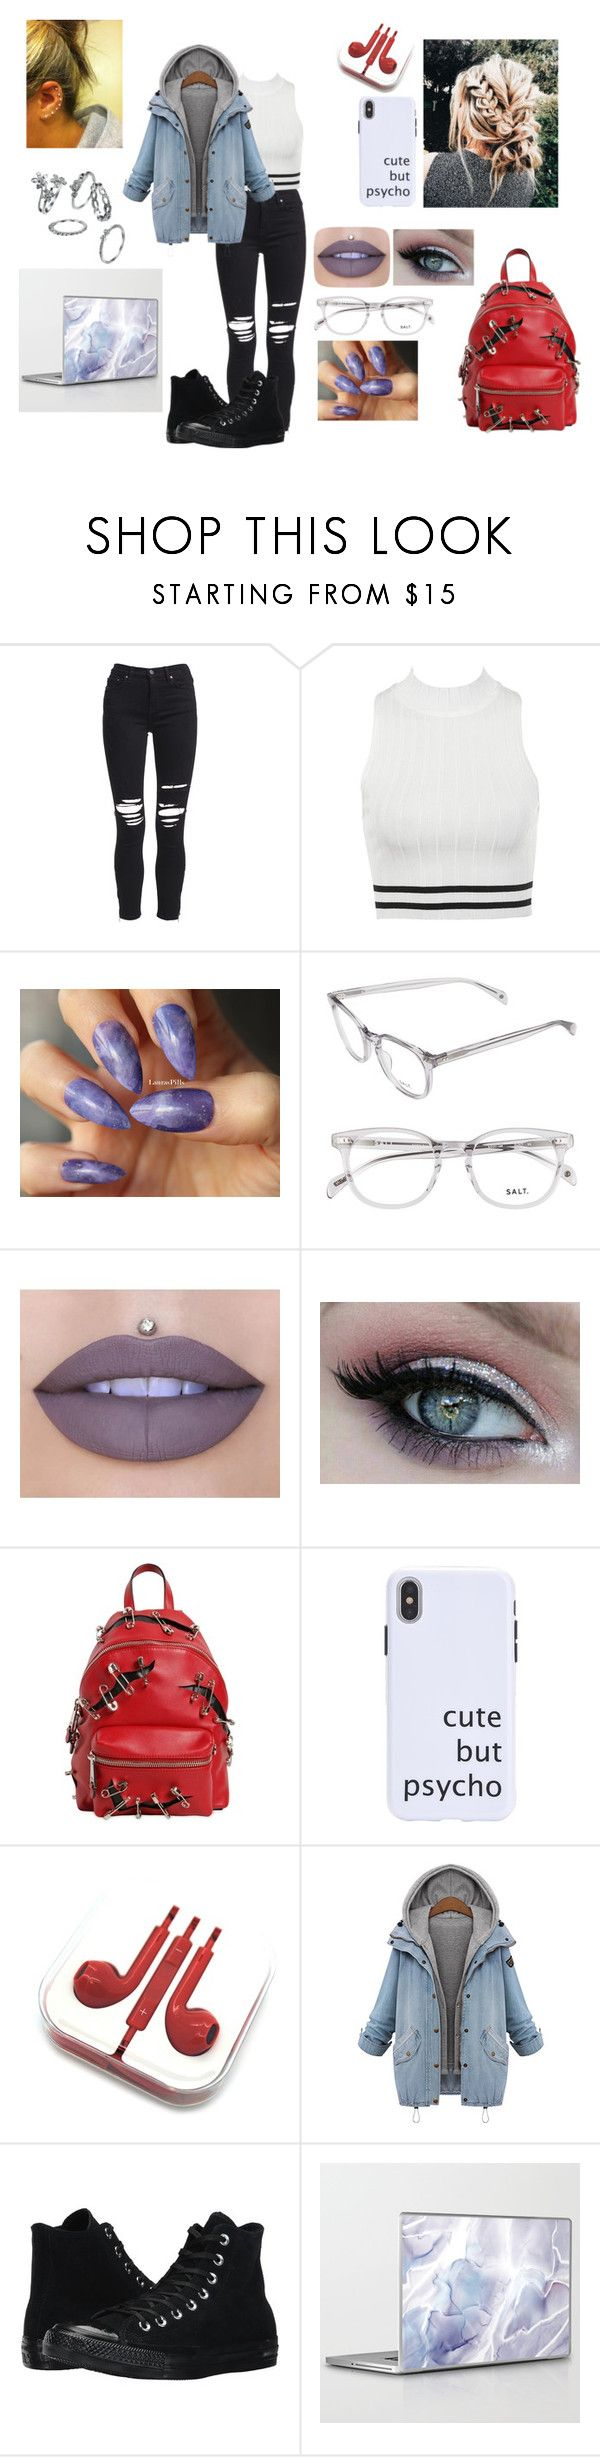 """(No Title)"" by ada101 ❤ liked on Polyvore featuring AMIRI, Jeffree Star, Moschino and Converse"